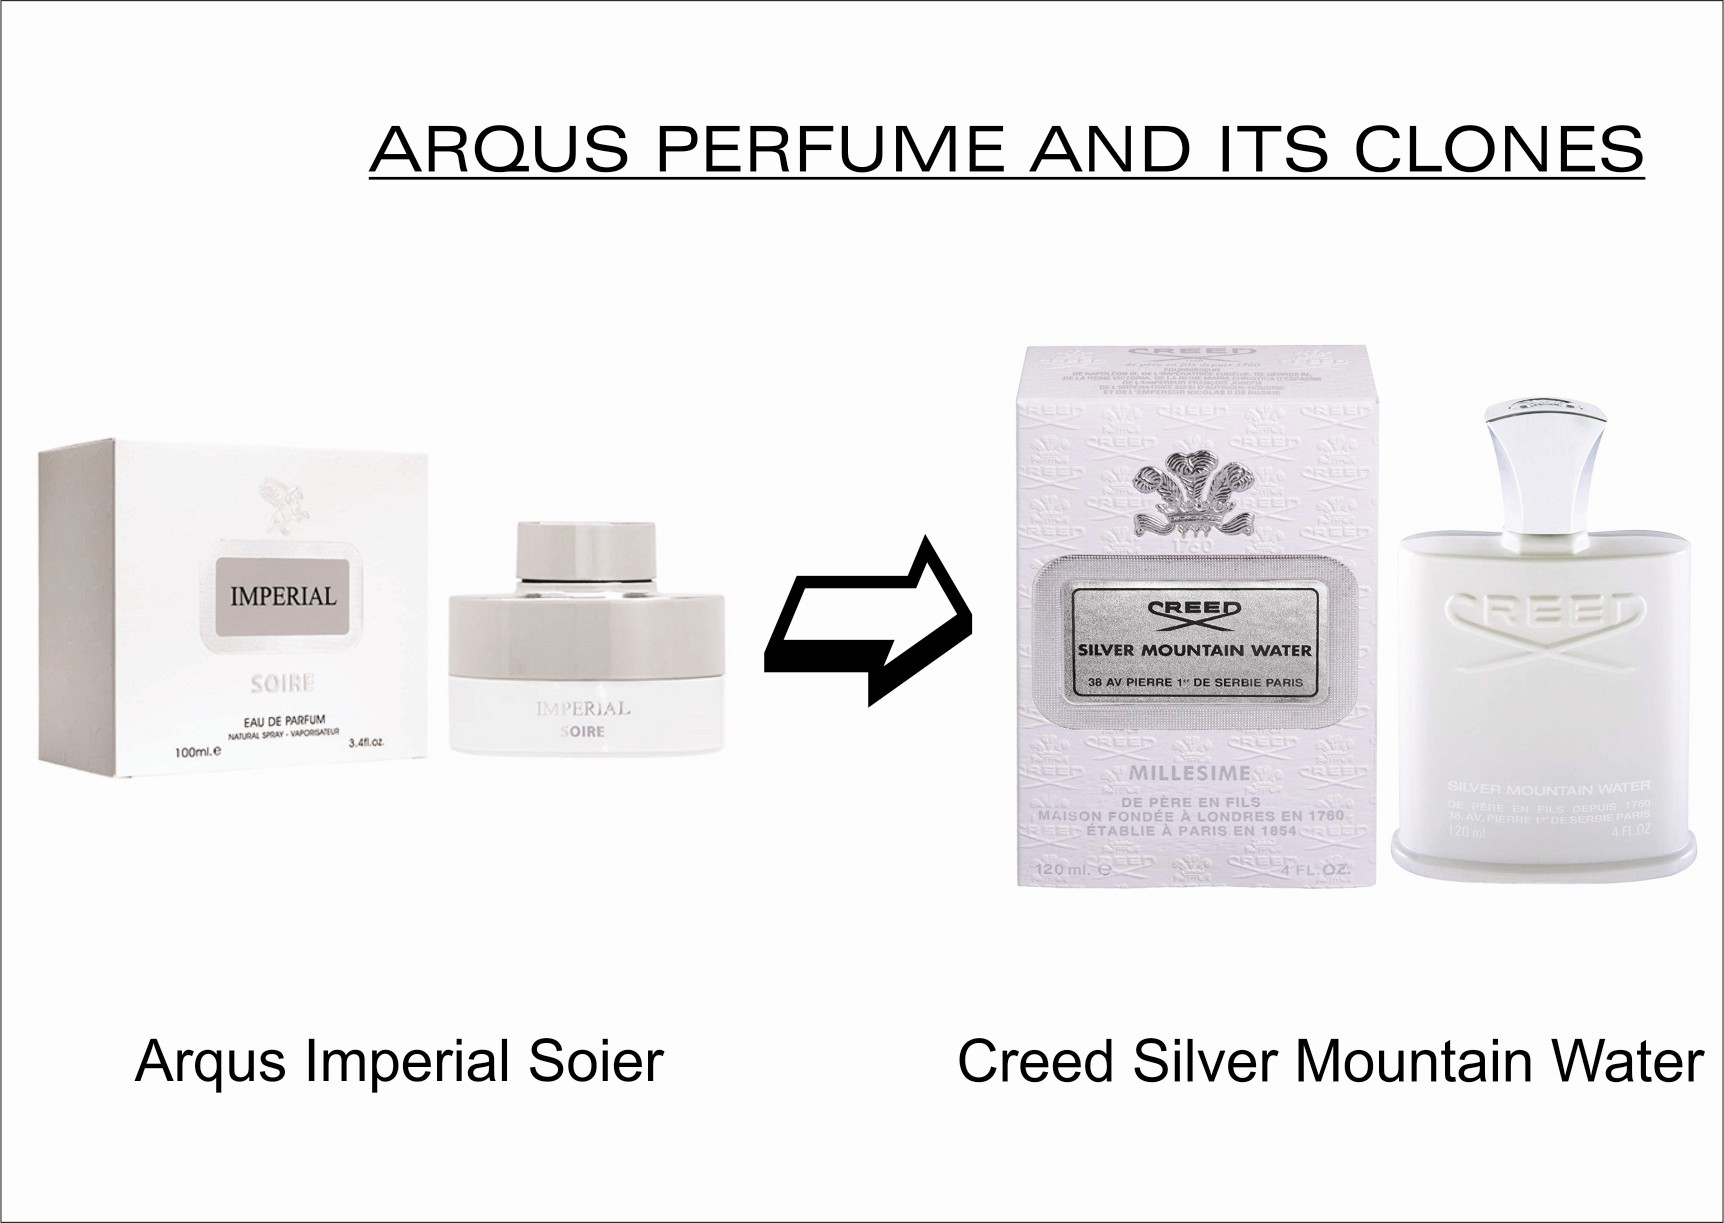 arqus-imperial-soire-for-men-100-ml-edp-by-lattafa-perfumes-creed-silver-mountain-water-perfume-for-men-100-ml-edp